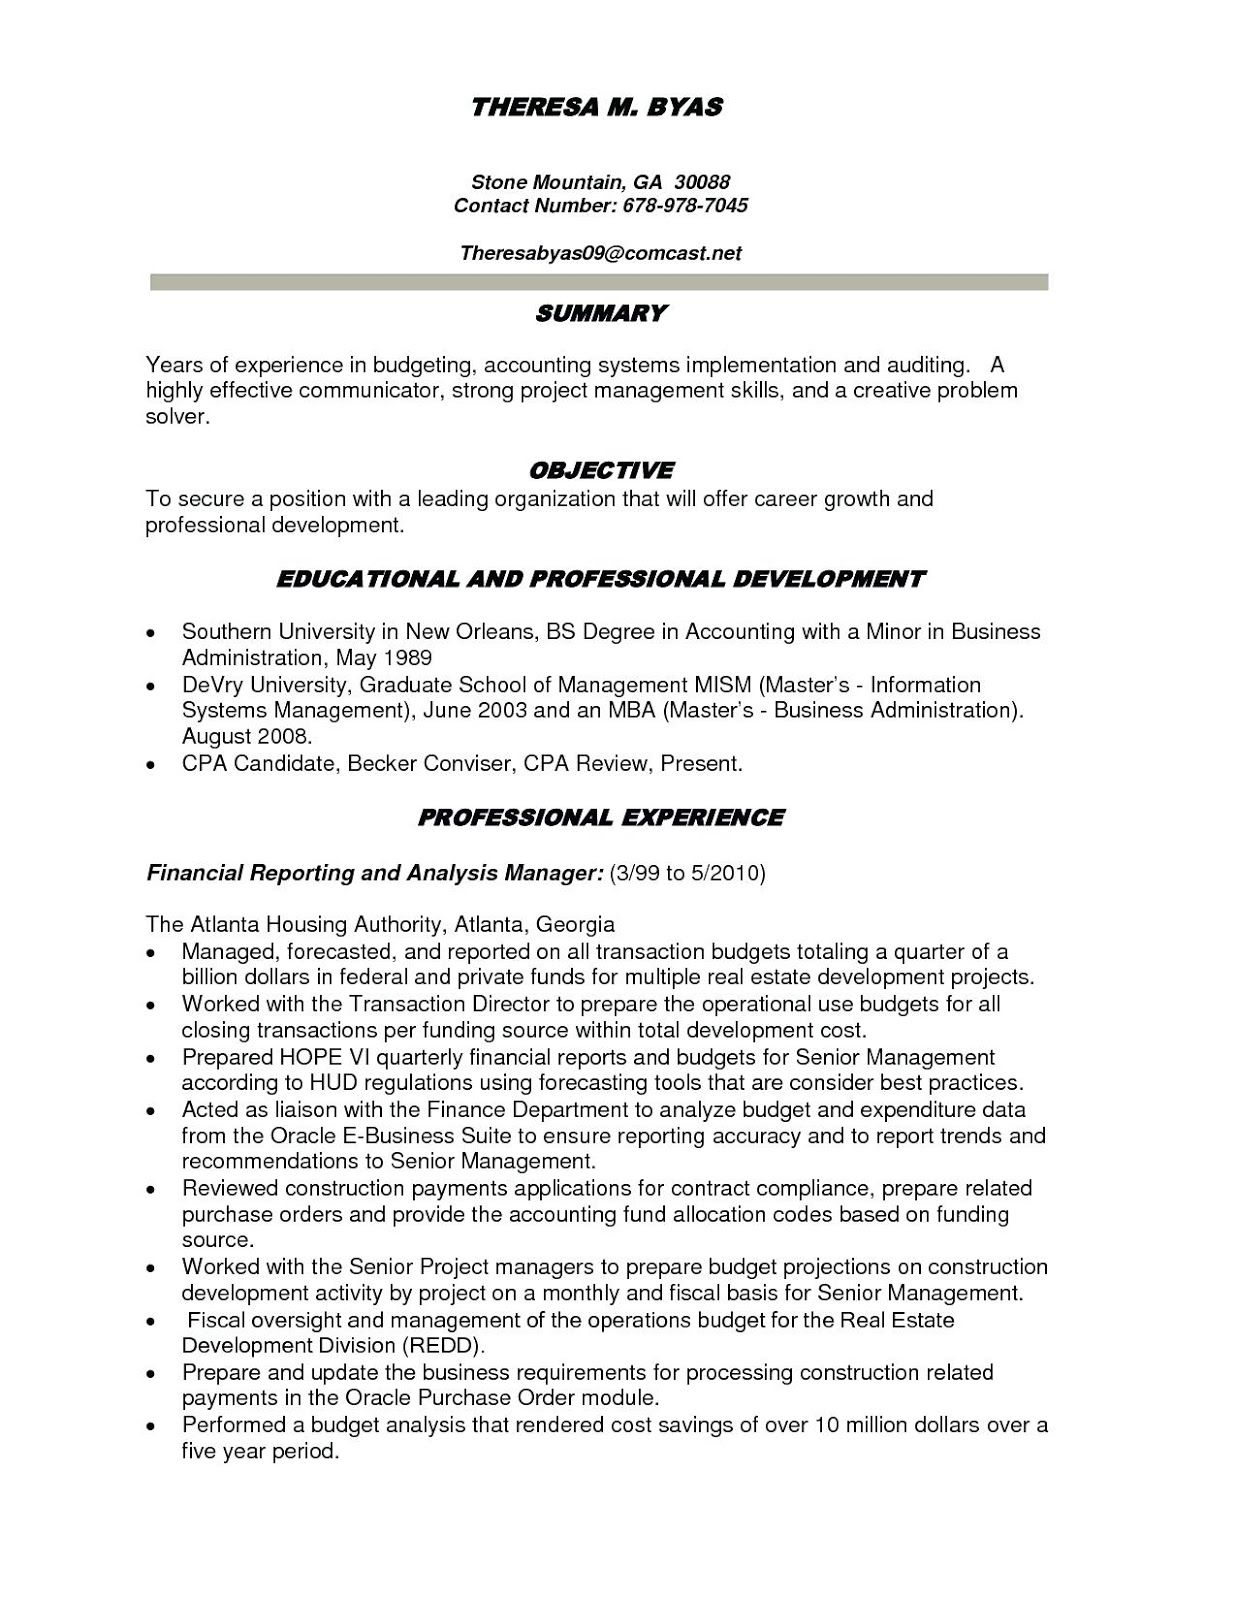 Best Resumes 2020.Best Accounting Resumes 2019 Best Resume Accounting